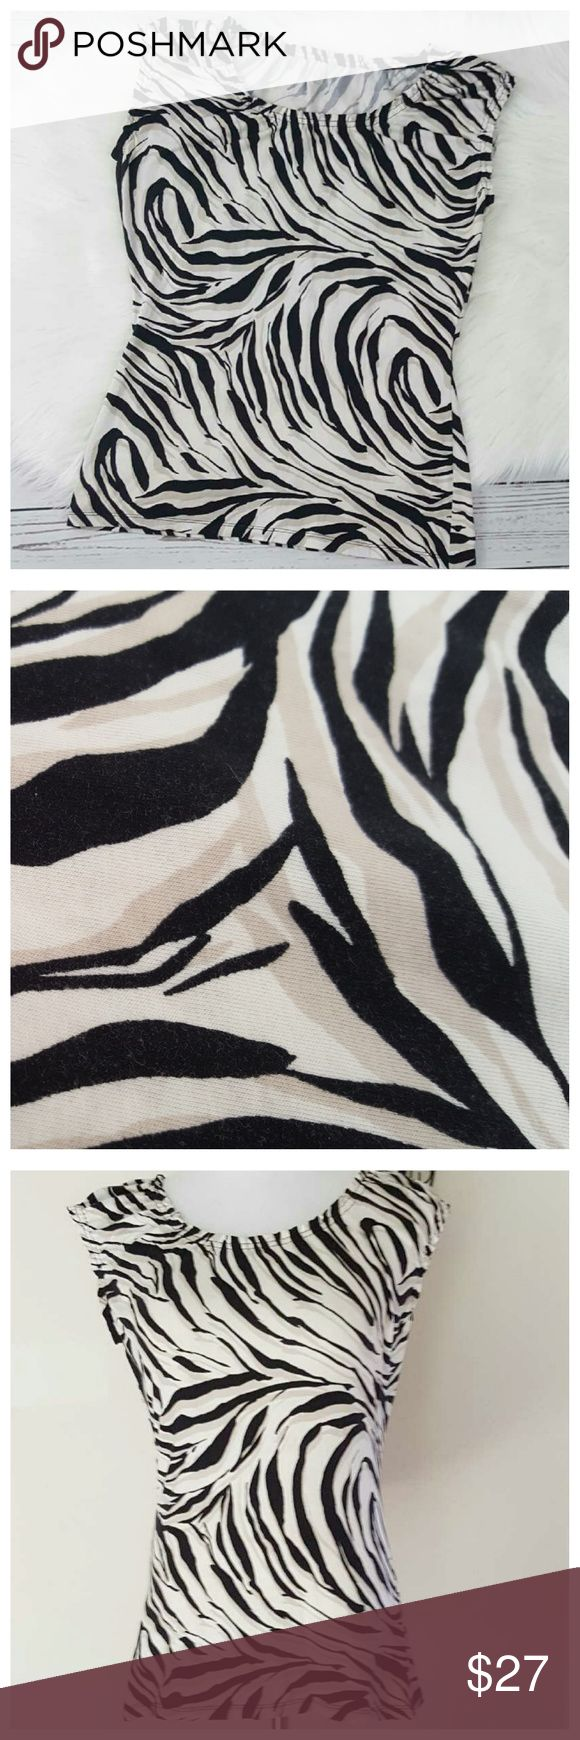 LOFT Zebra Print Cap Sleeve Top MD Cotton Blend Ann Taylor LOFT Zebra Animal Print Top. Lightweight, stretchy soft tee. Scoop, elastic neckline with cap, elastic short sleeves. Colors: White, black and cream. Women's size medium. Flat lay measurements shown in pic 4. 95% cotton, 5% spandex. Machine wash cold. Overall very good condition, minimal wear from wash/wear twice. LOFT Tops Tees - Short Sleeve